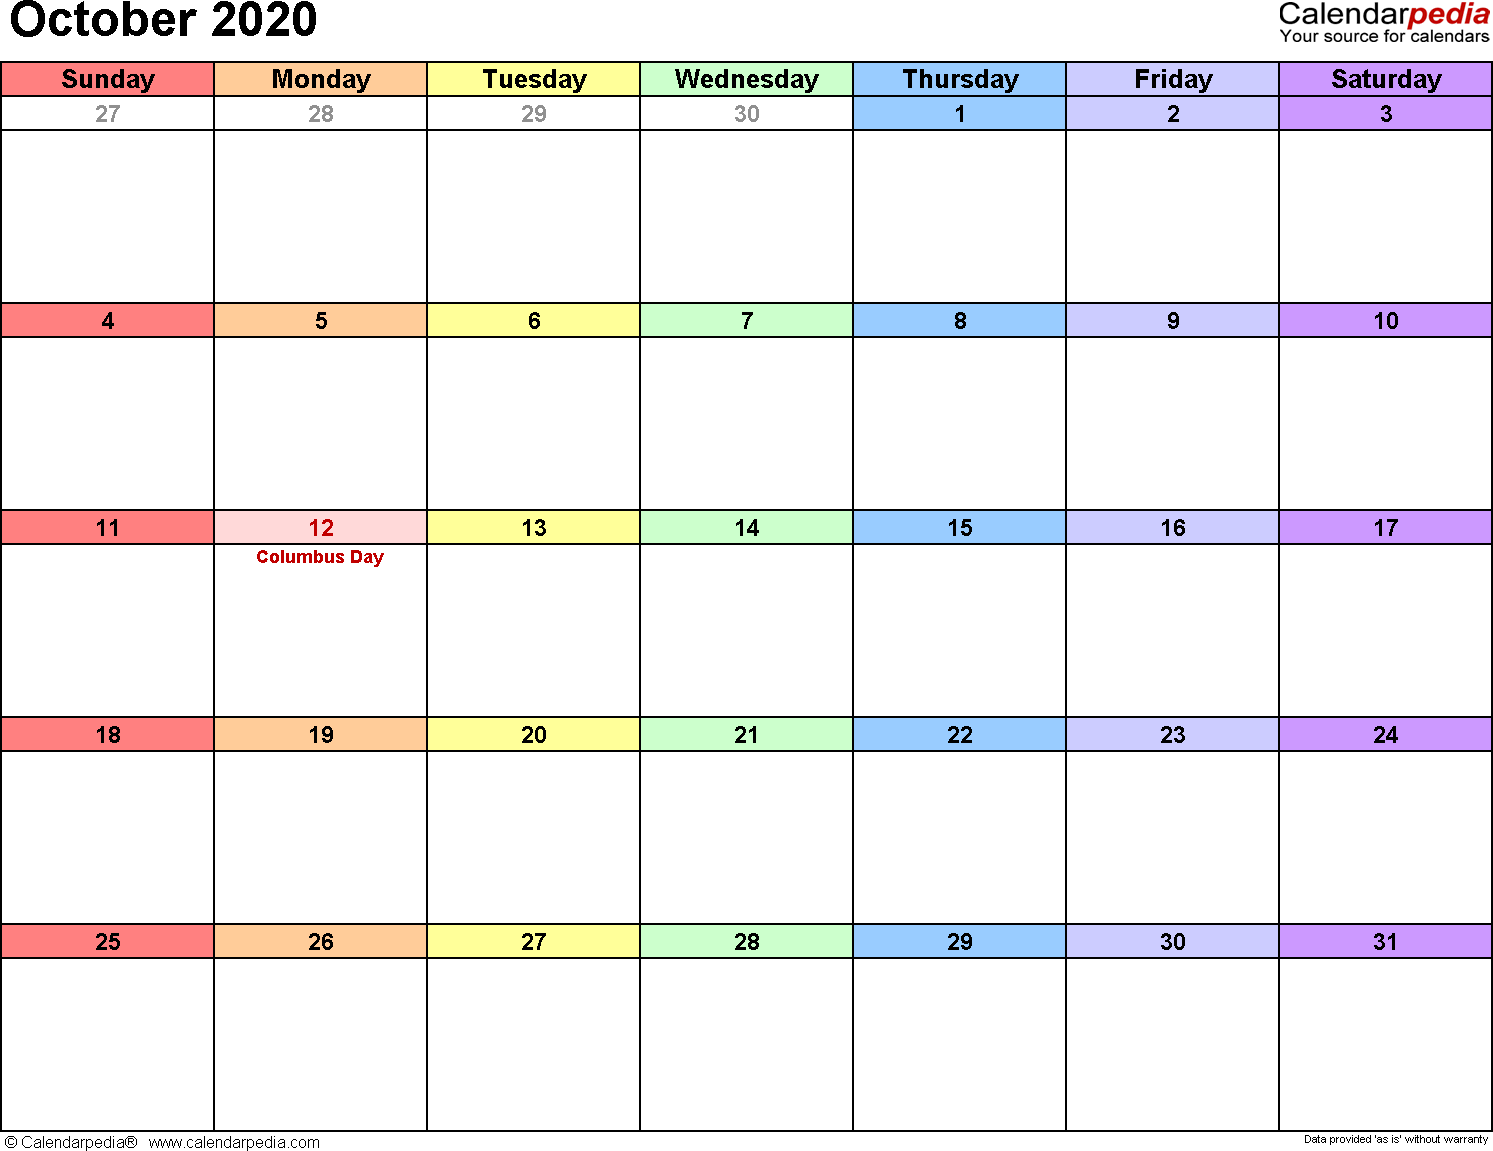 2020 Oct Calendar October 2020 Calendars for Word, Excel & PDF